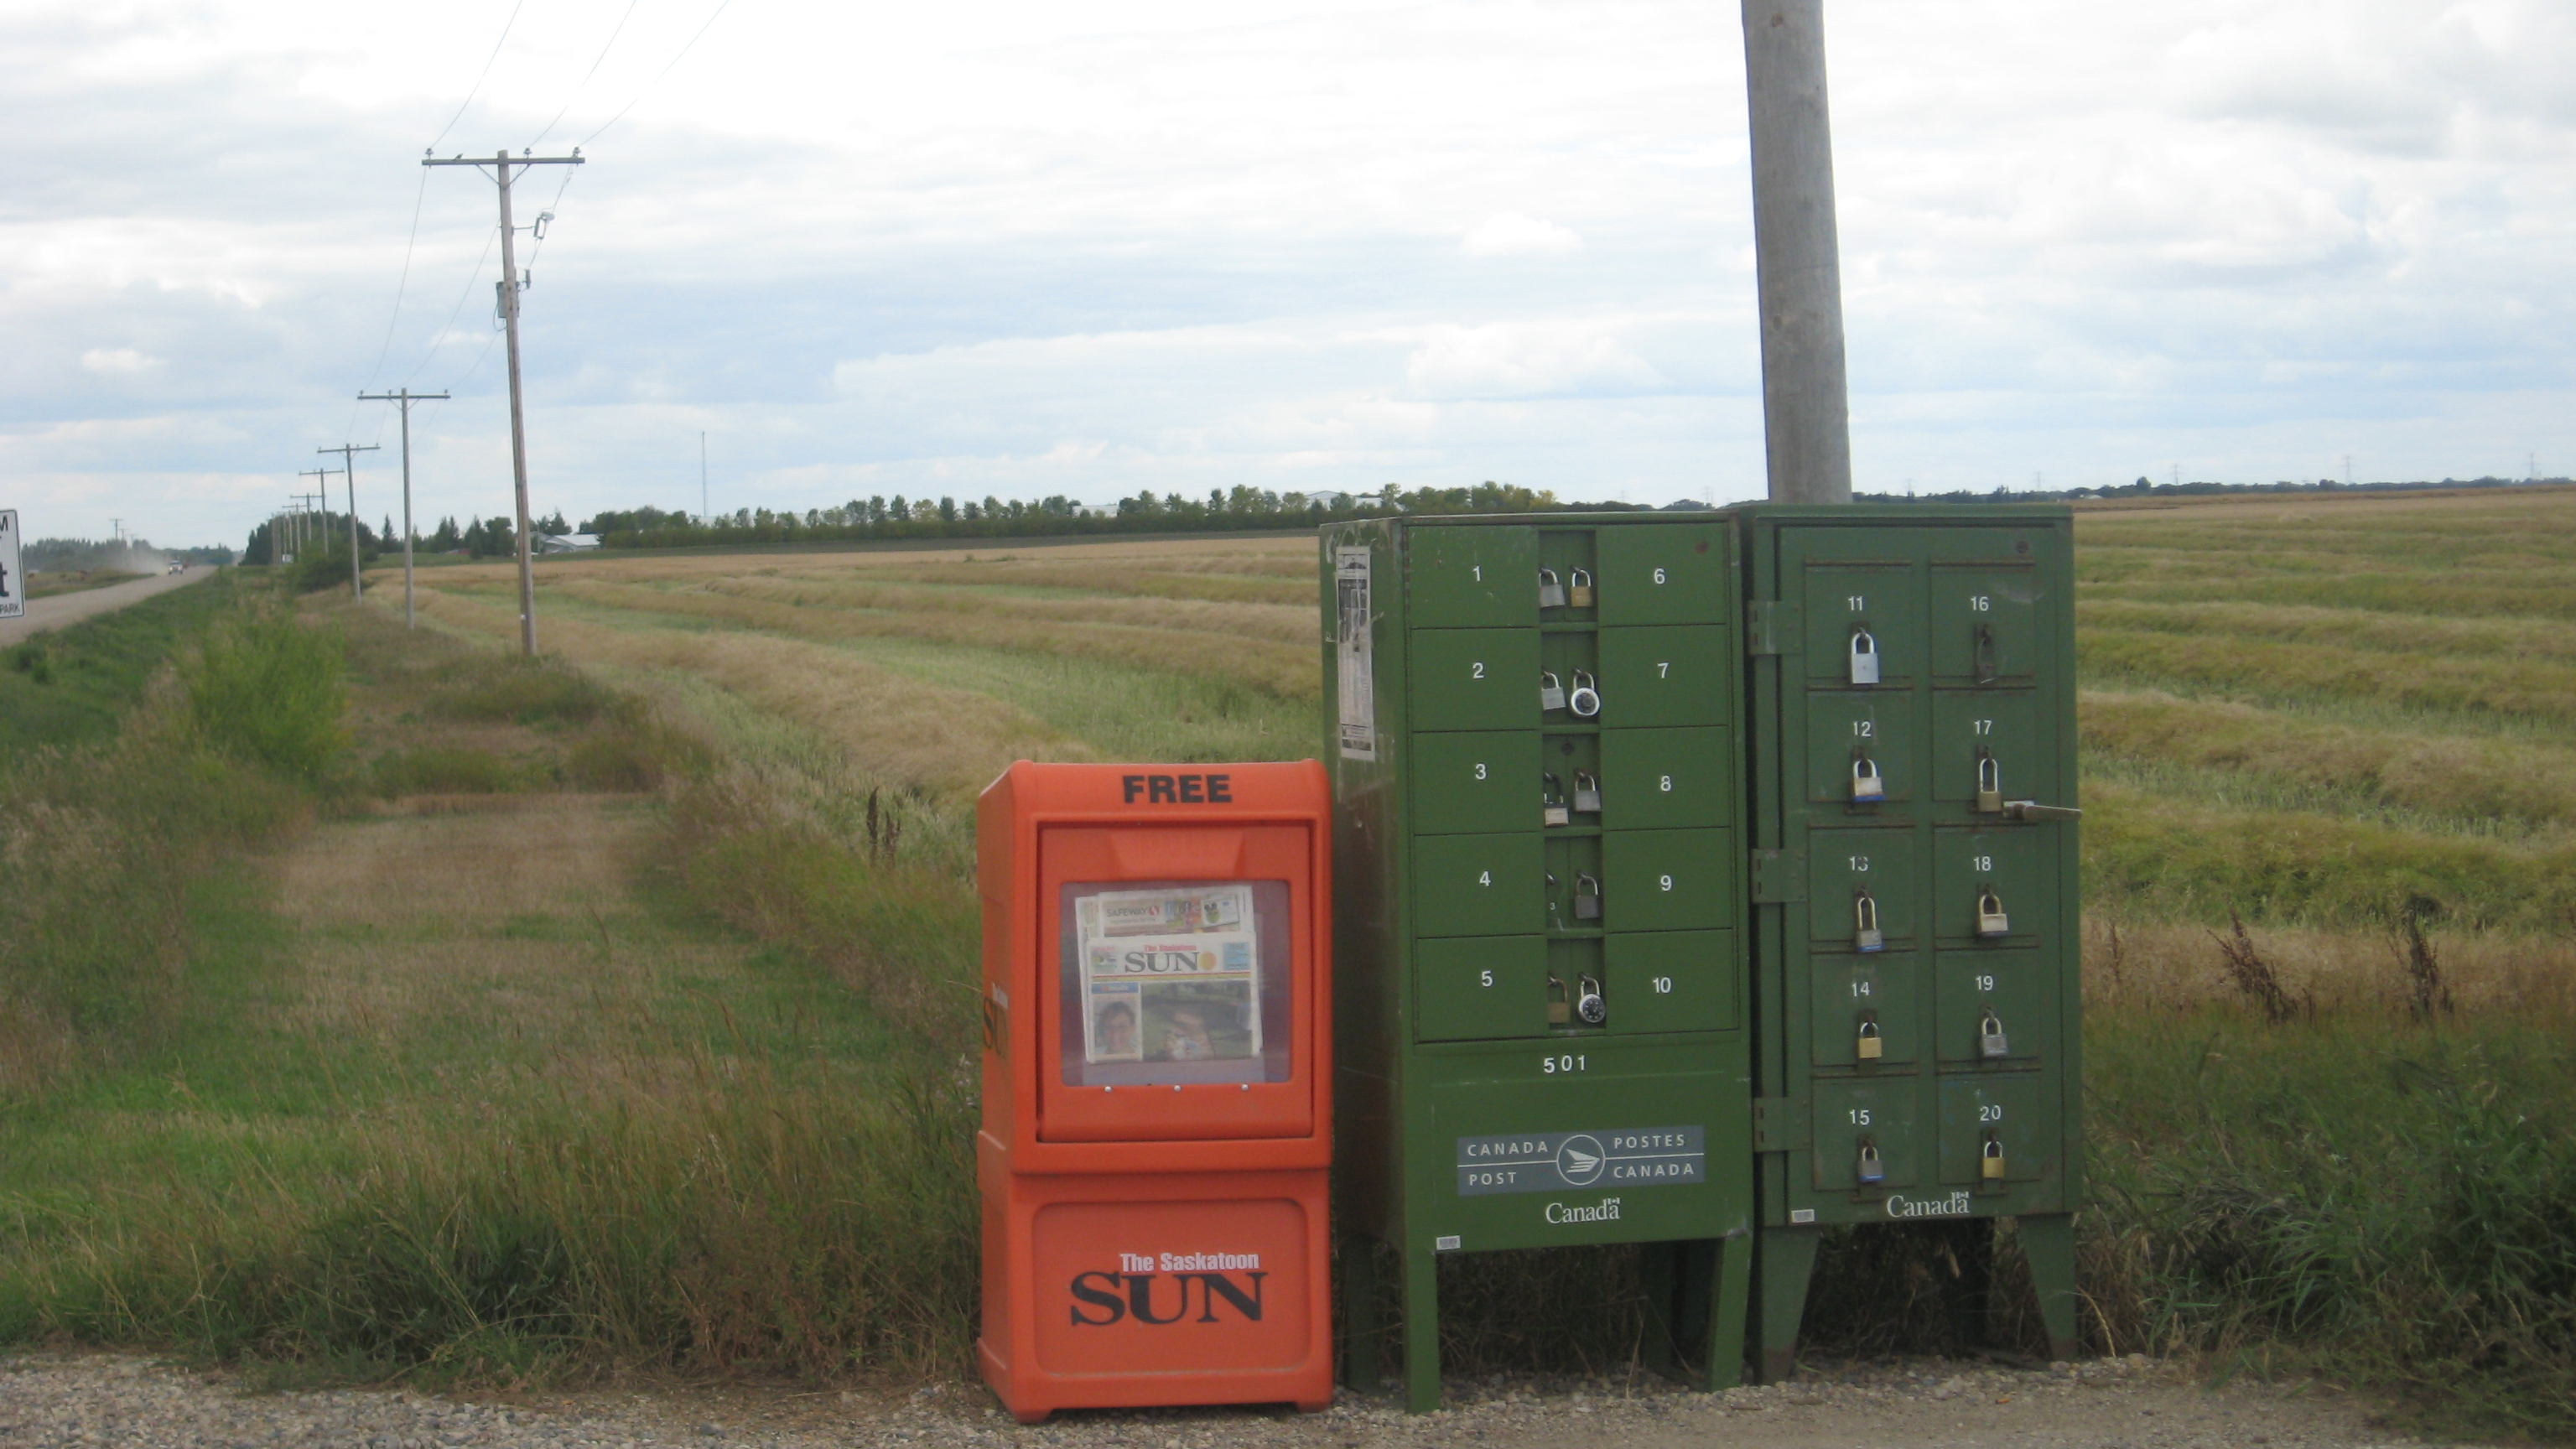 Canada Post Rural Community Mail Box (CMB) Station